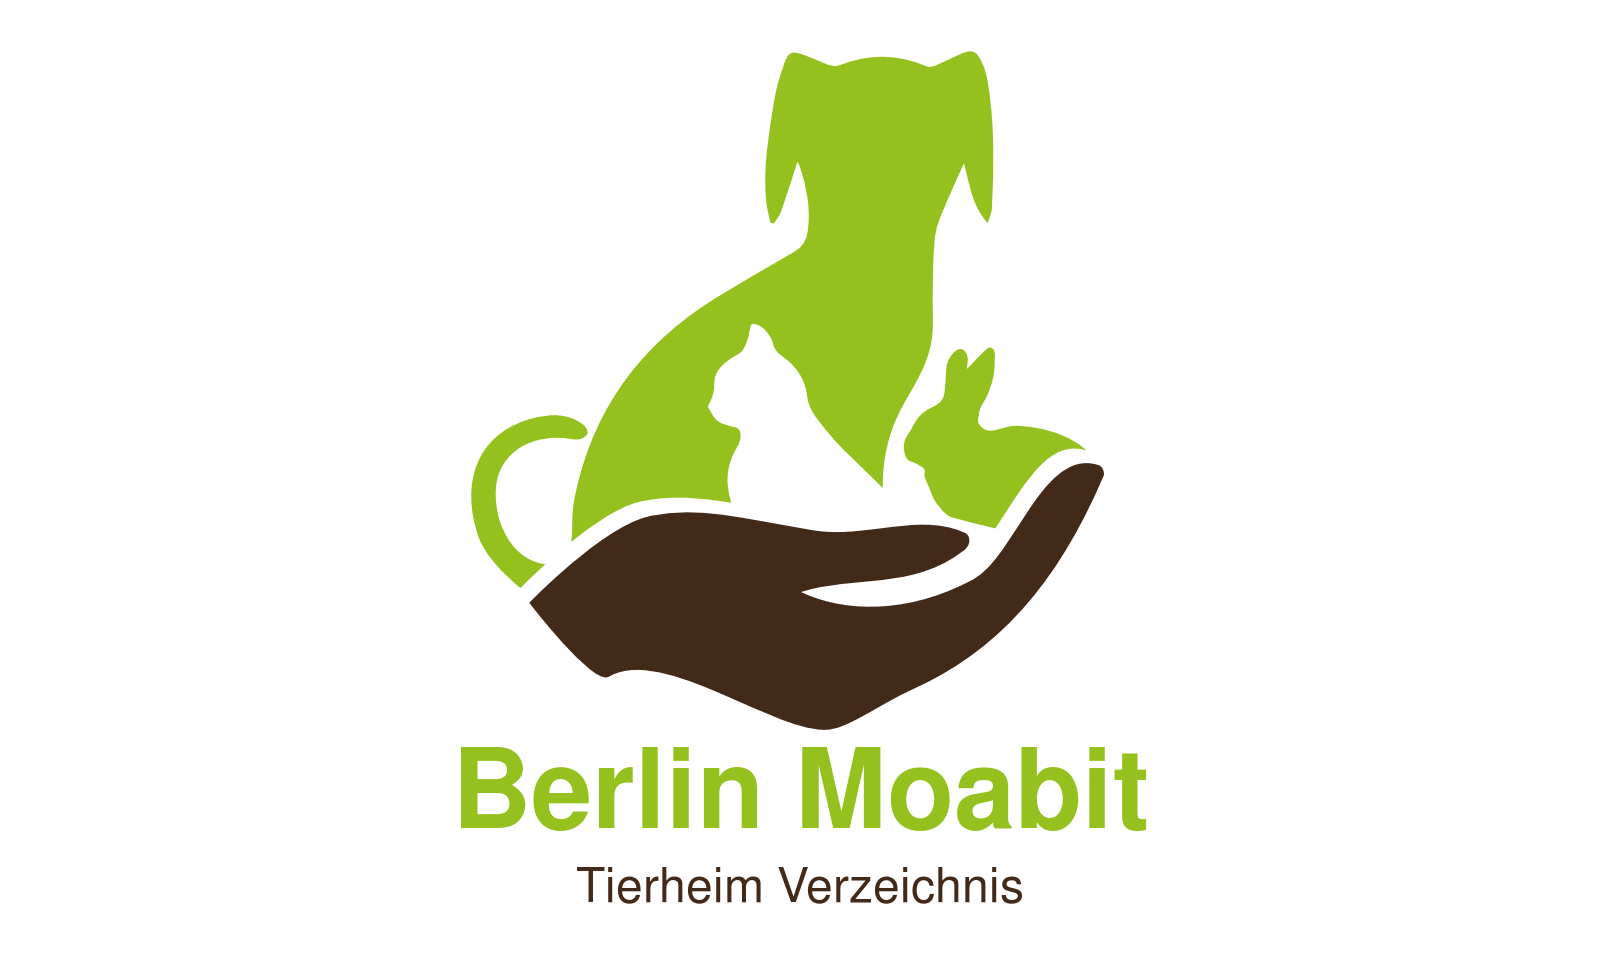 Tierheim Berlin Moabit